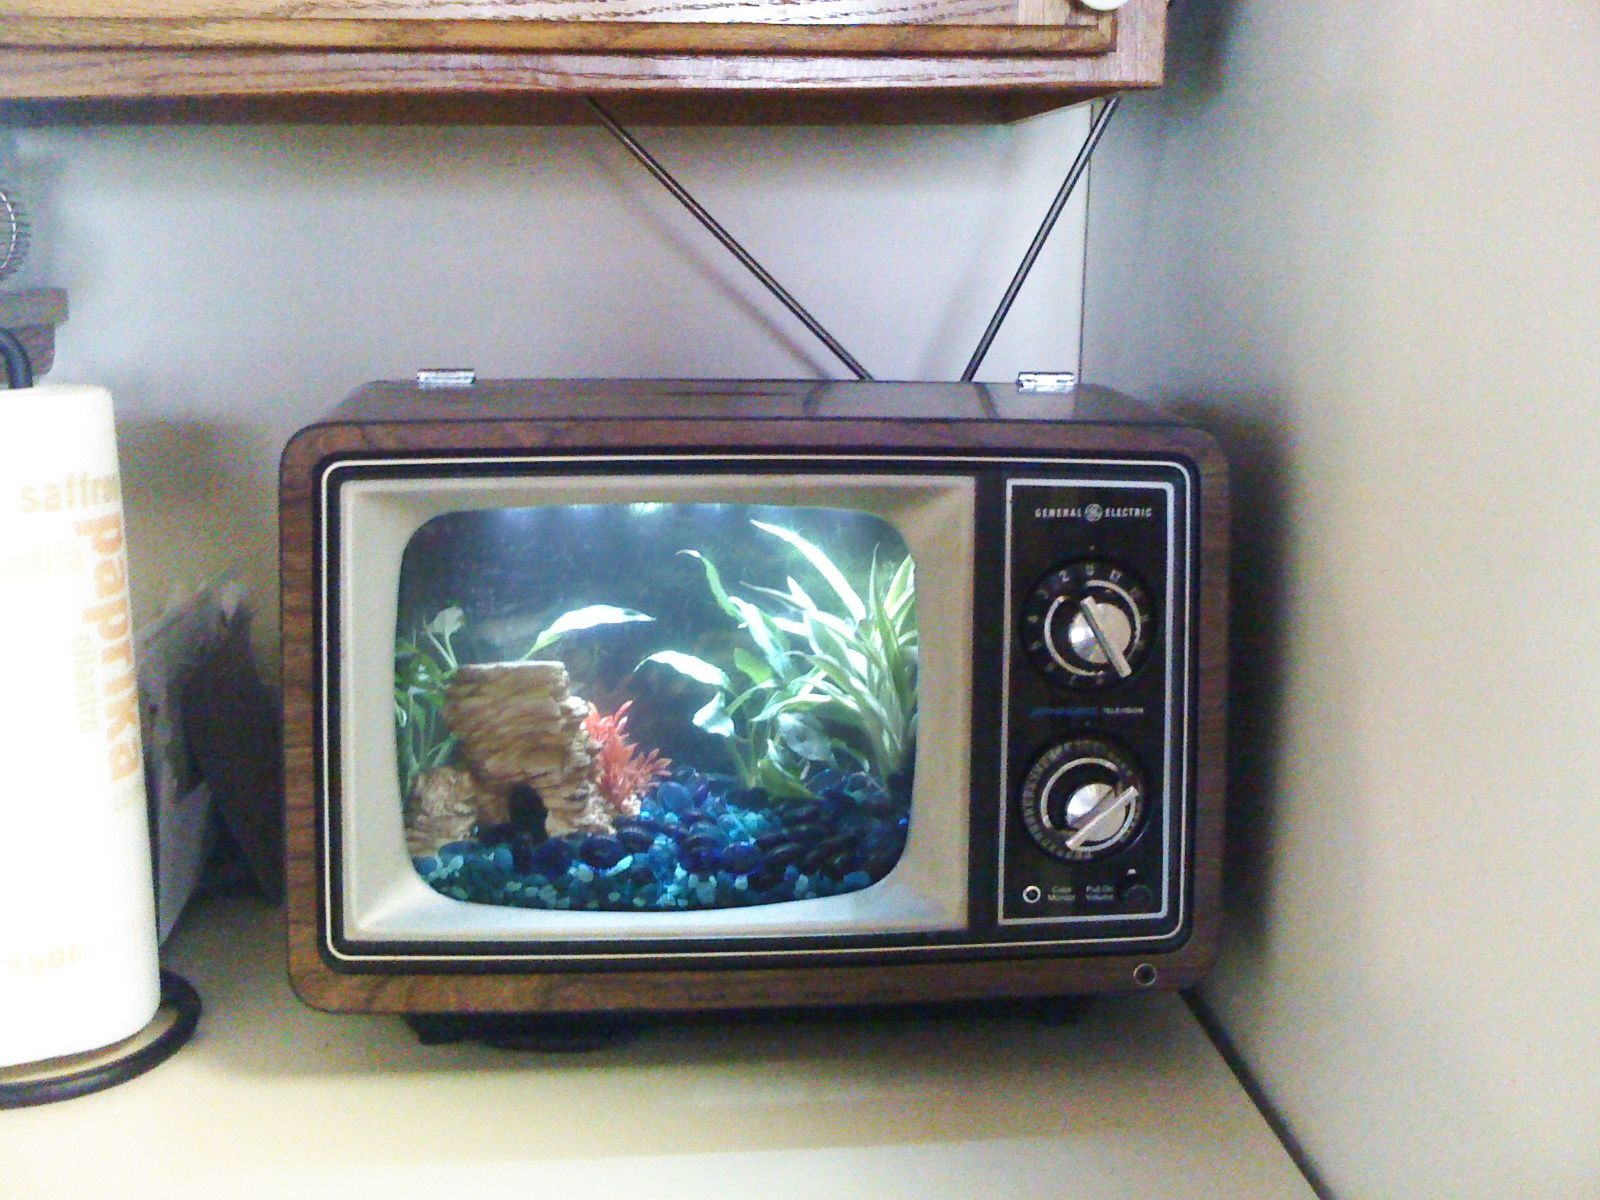 Aquarium fish tank diy - Cute Little Table Top Version Of The Fish Tank Tv Aquarium Tank